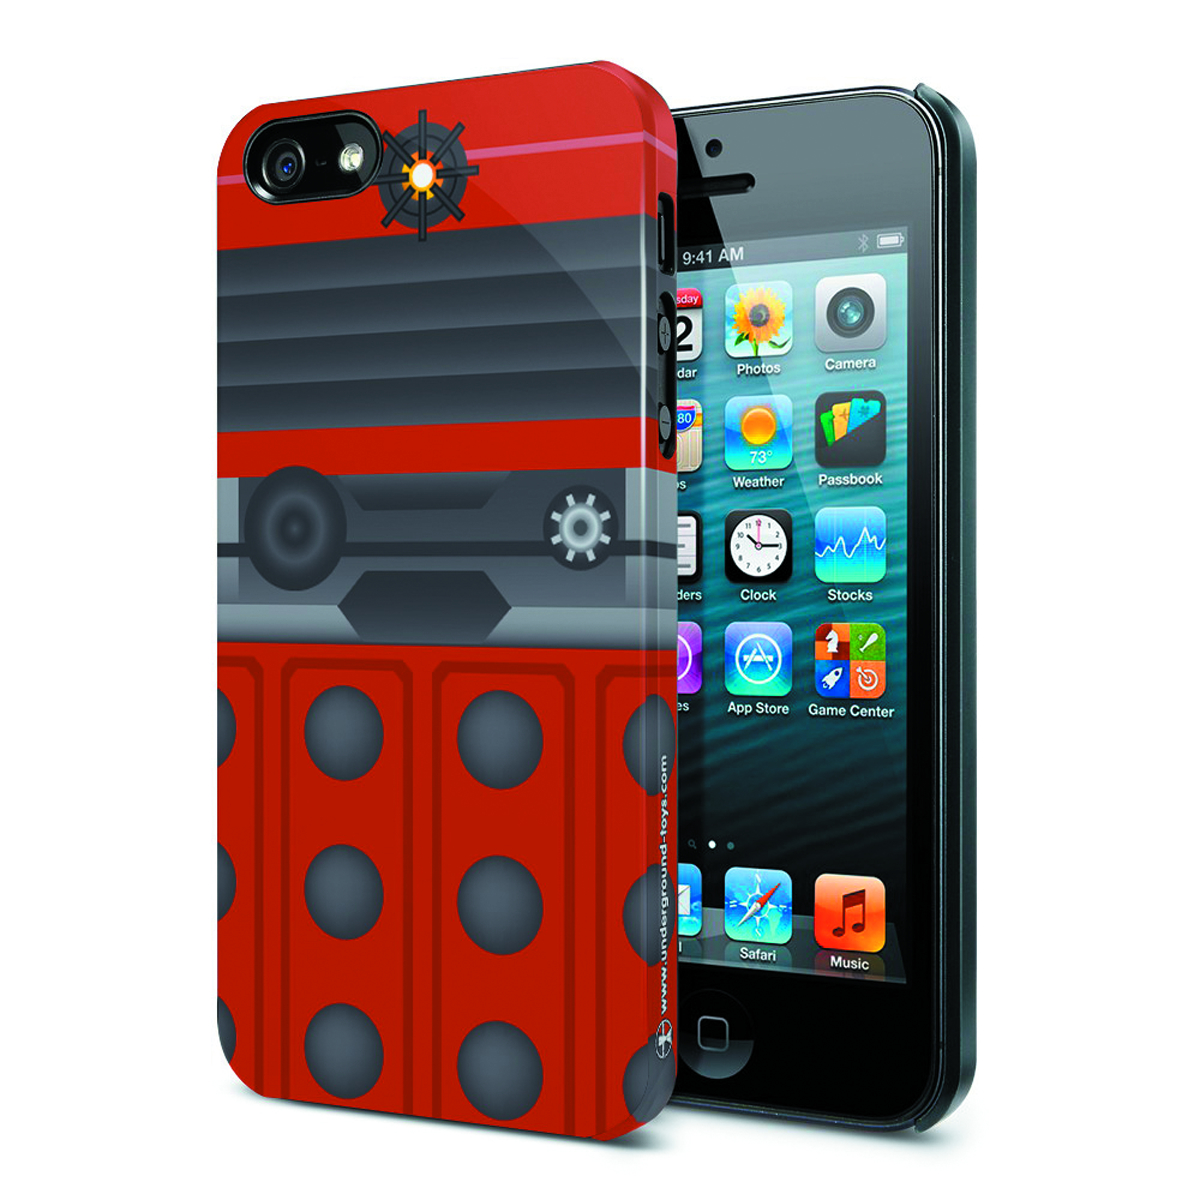 DOCTOR WHO NOT ANOTHER DALEK IPHONE 4 CASE